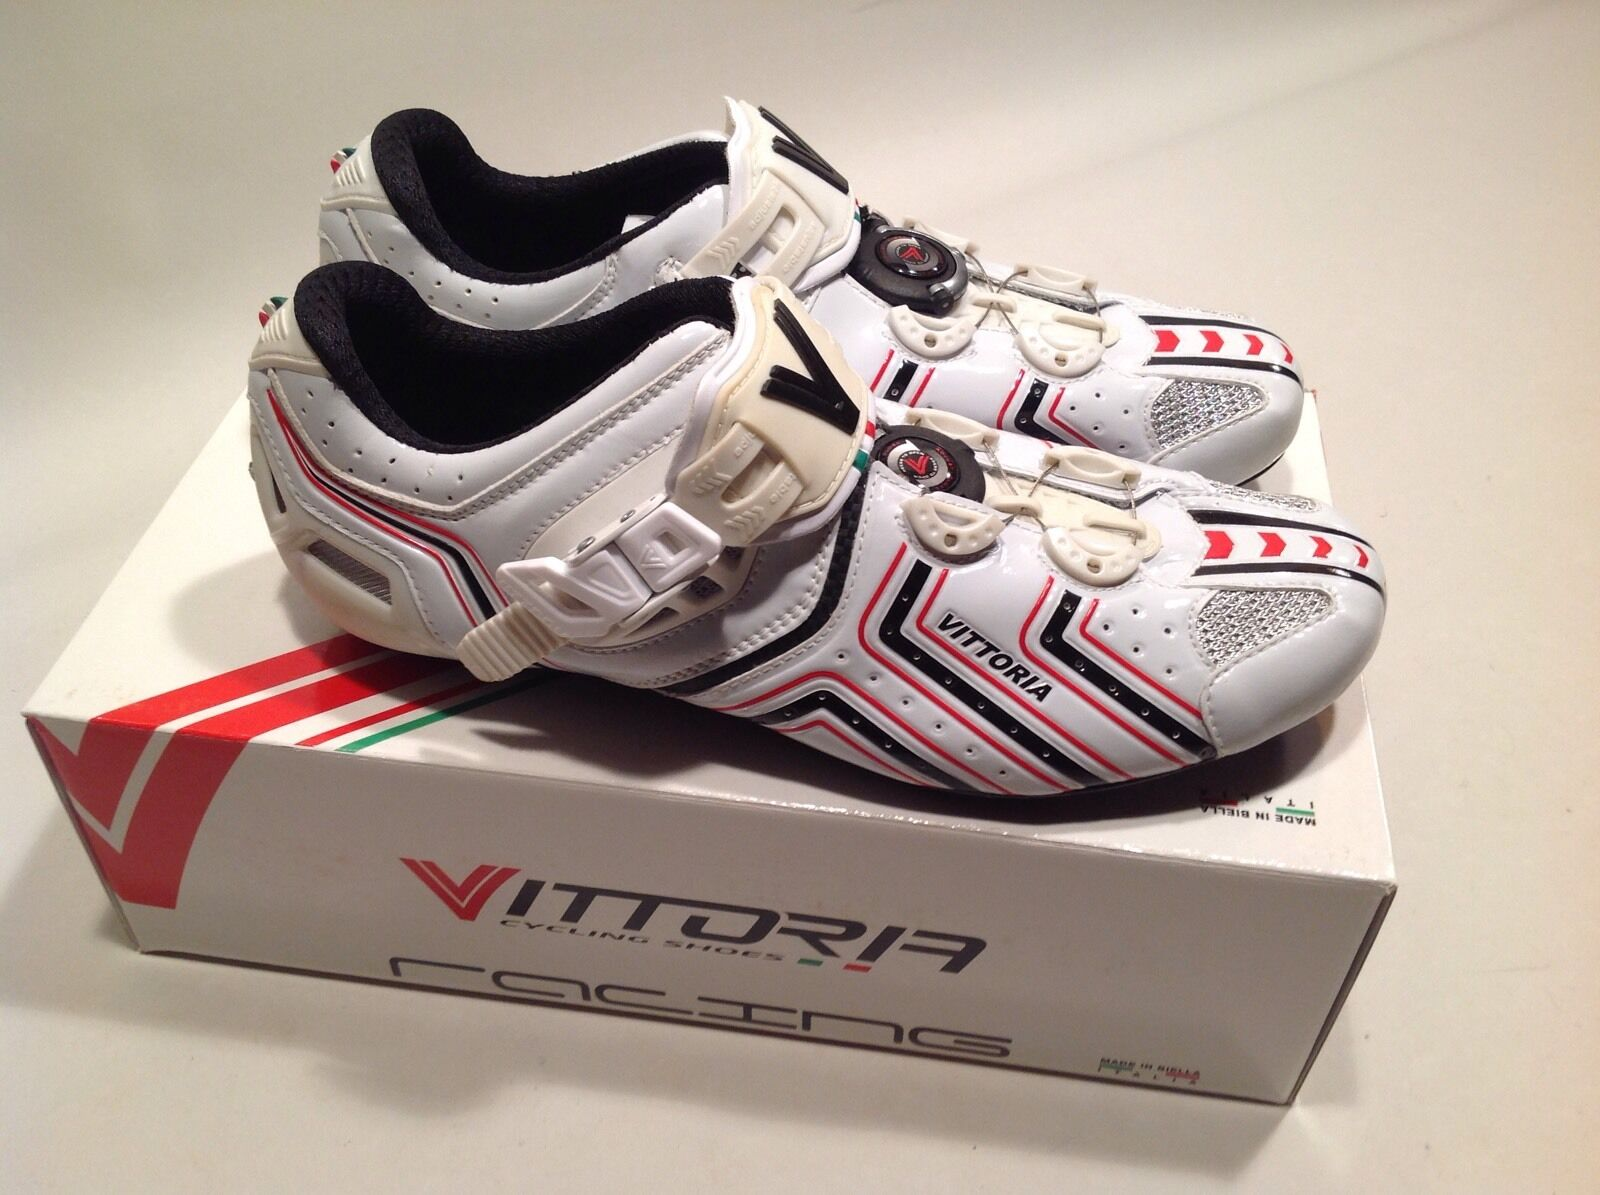 Vittoria Hora Road Cycling shoes 41 Eu 8.5 US micrometric cable closure white